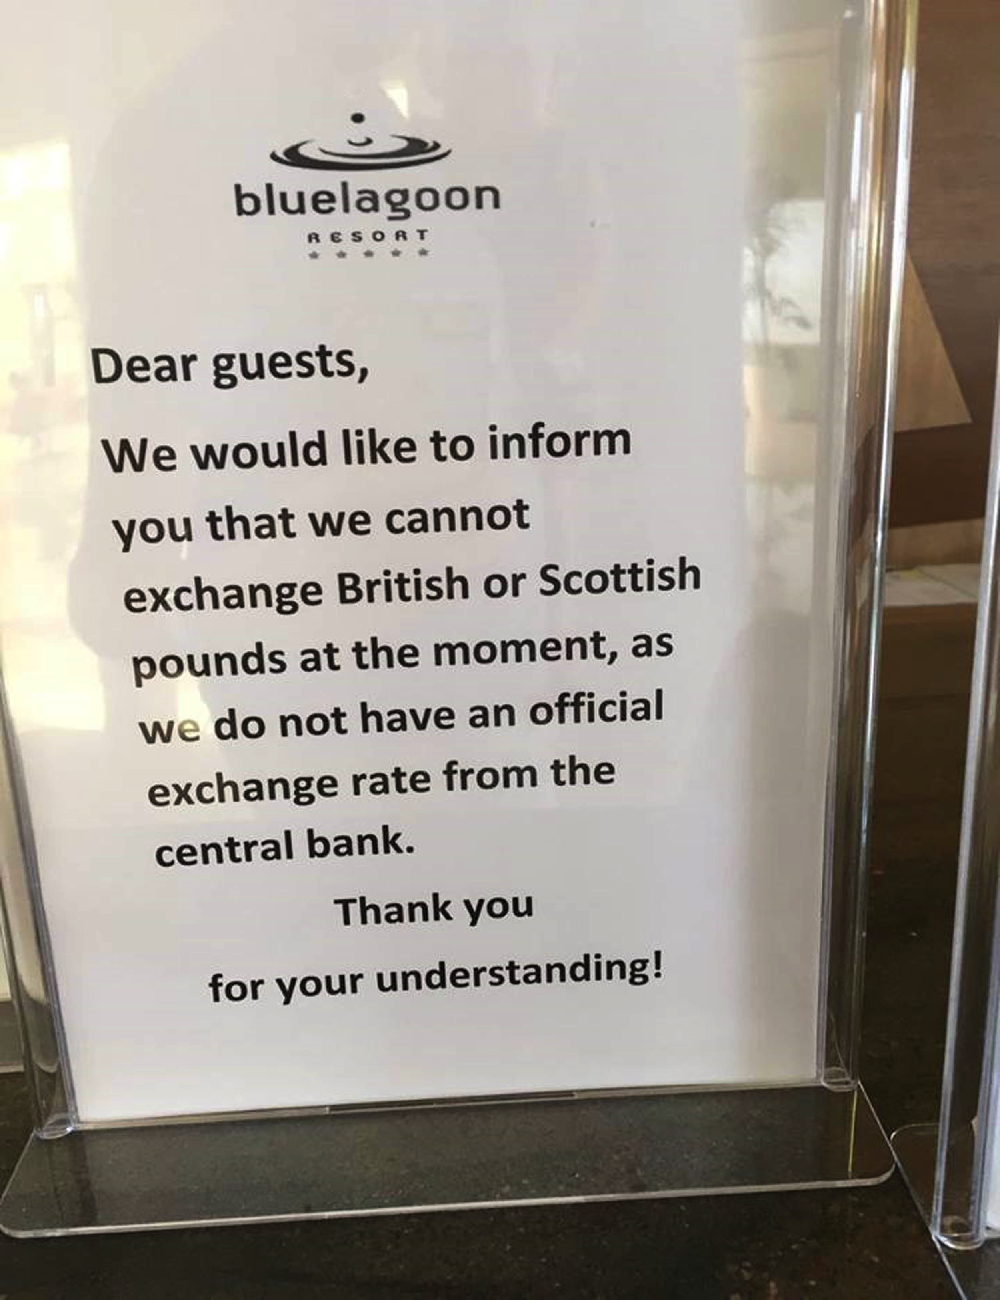 The notice was posted at the Blue Lagoon resort